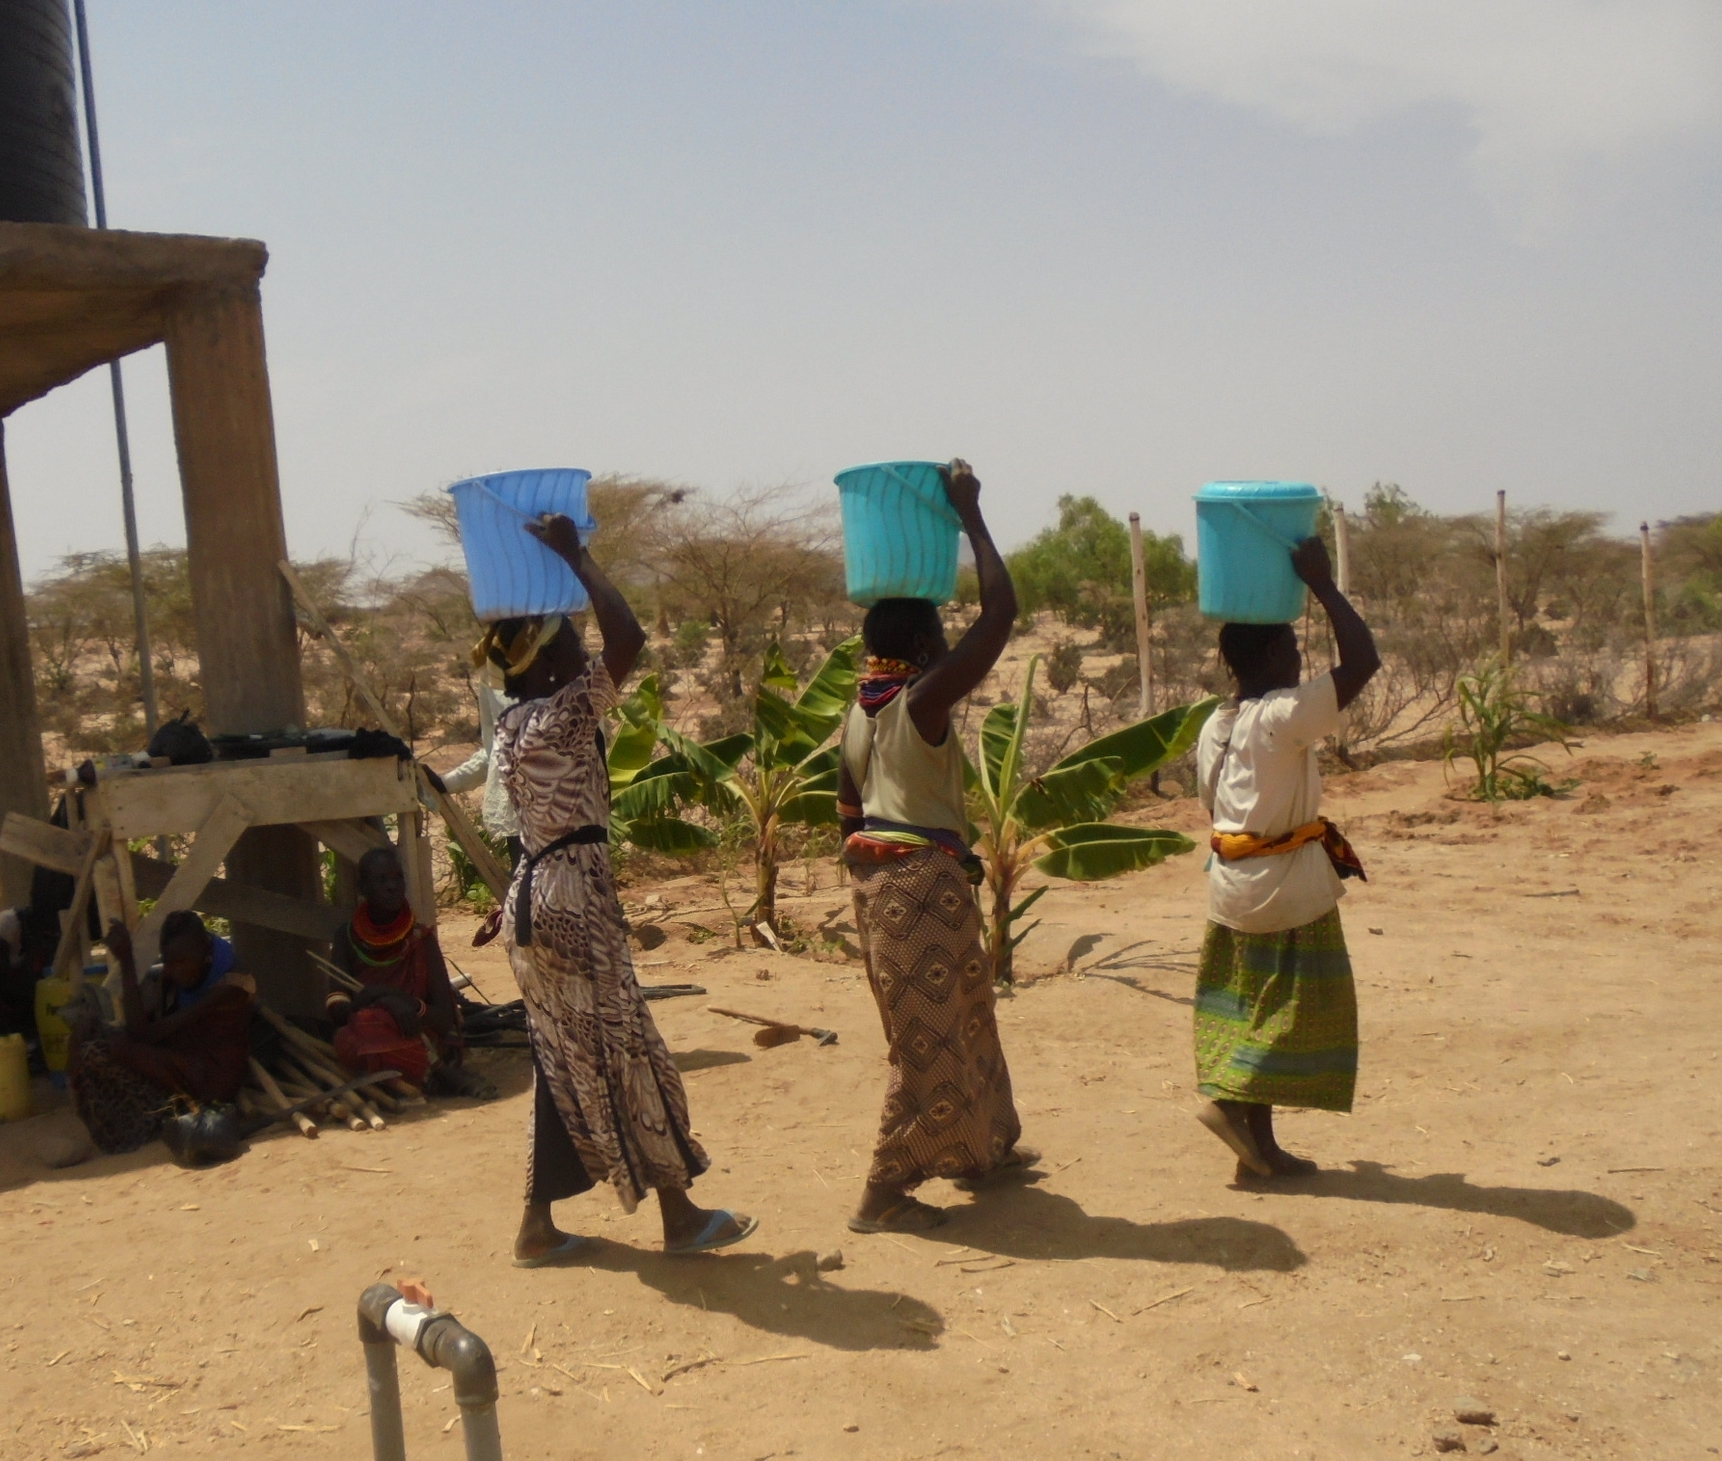 Photo: Achukule members drawing water from their borehole in Lokichar, Turkana County, Kenya in February 2016